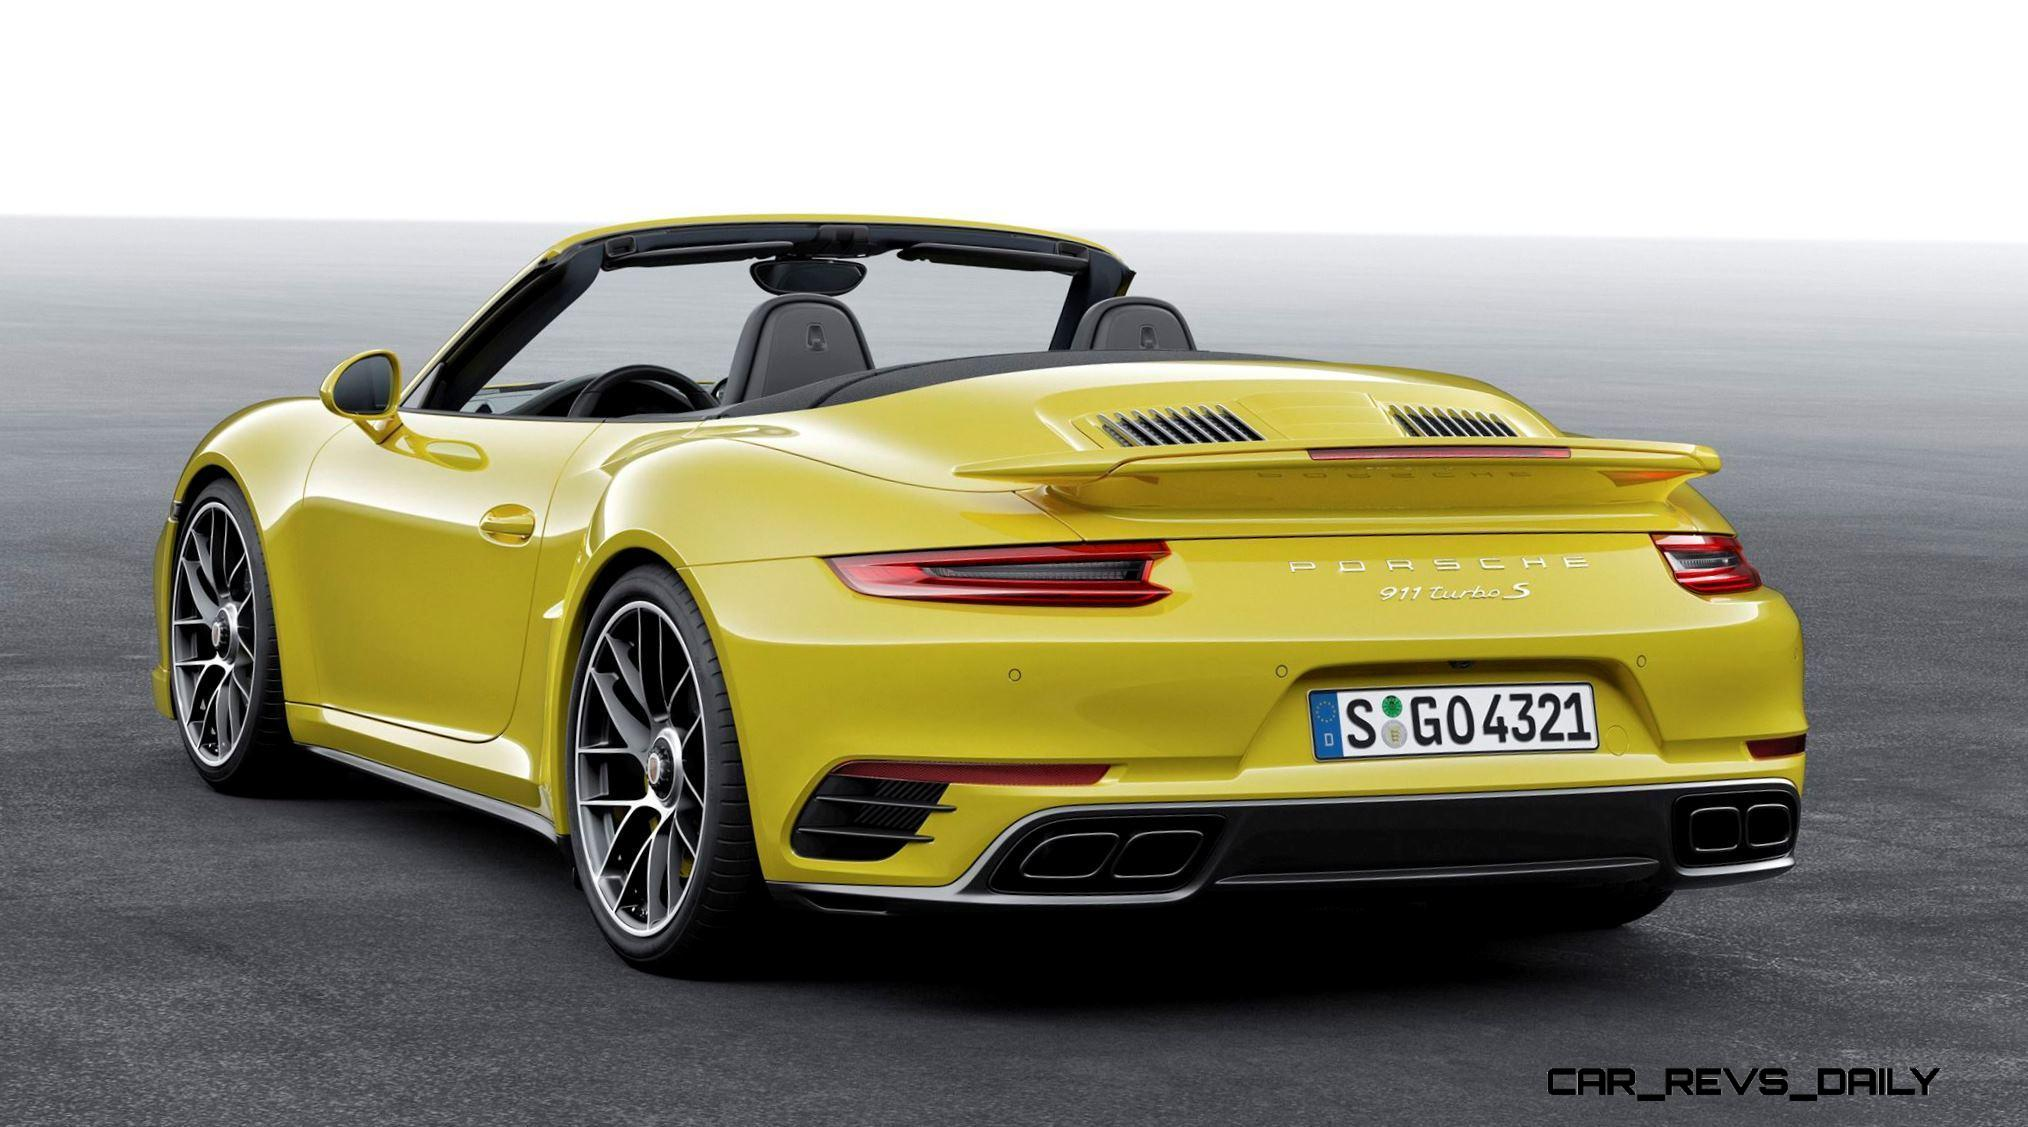 2017 Porsche 911 Turbo S photo - 1